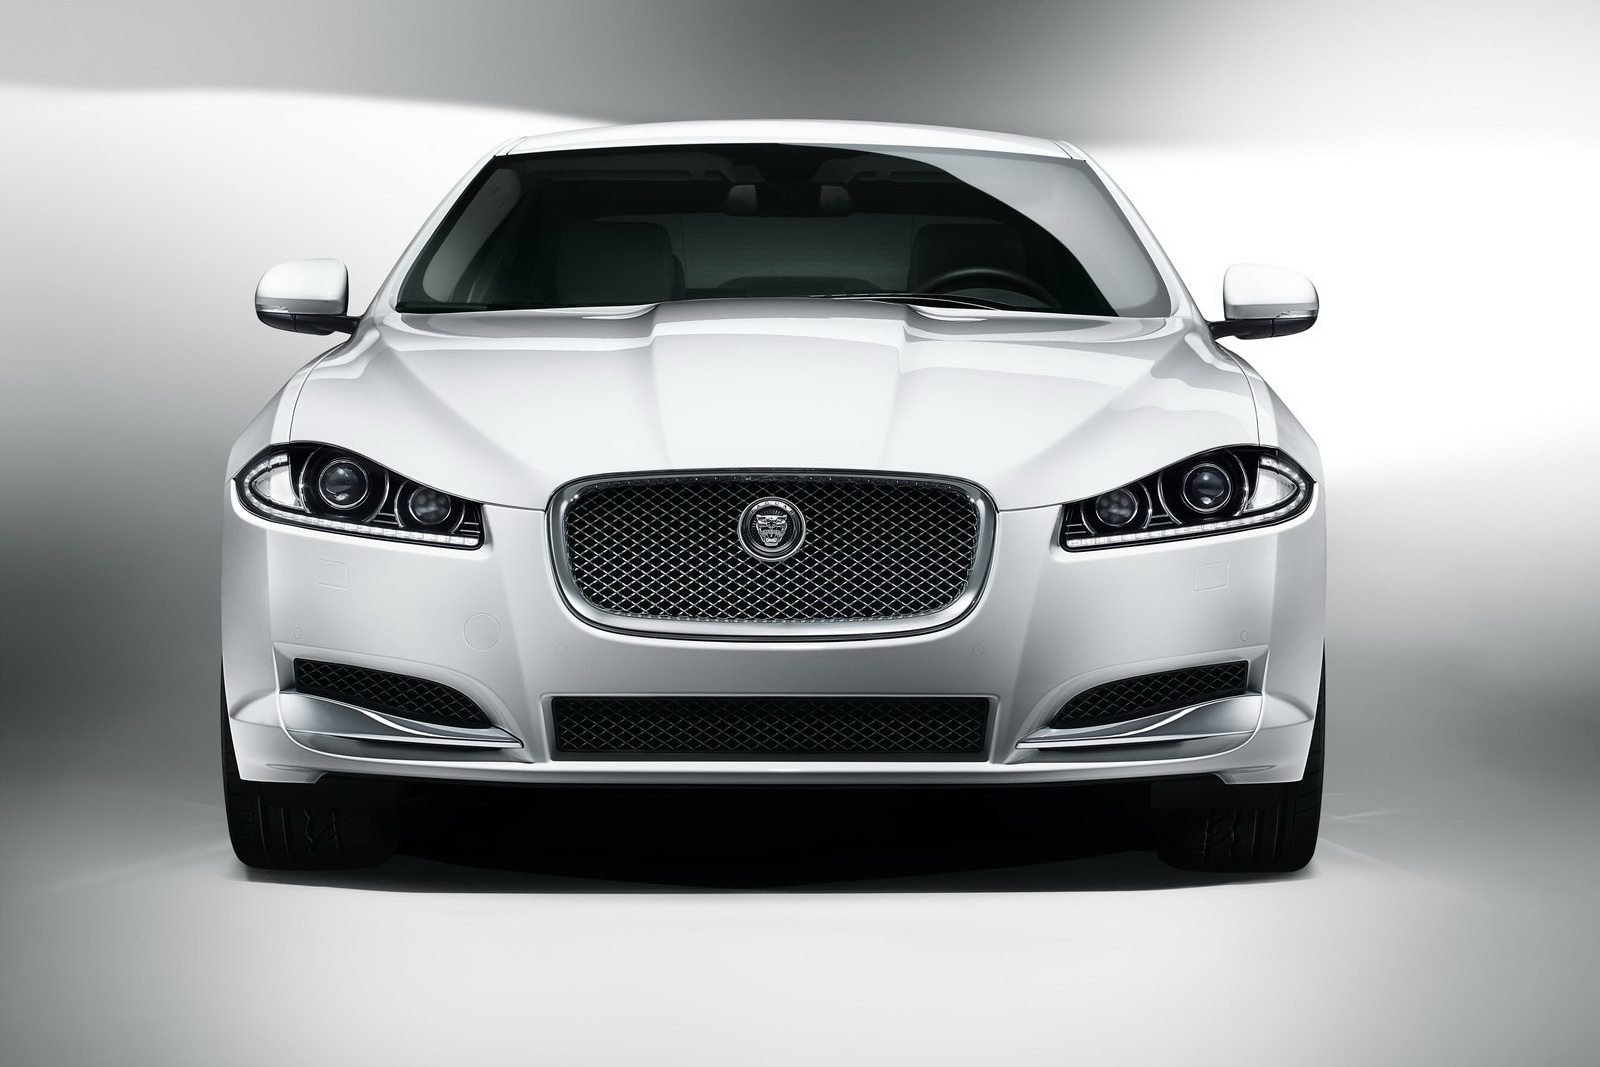 2012 Jaguar XF XFR 1 2012 Jaguar XF and XFR with Different Technical Specifications